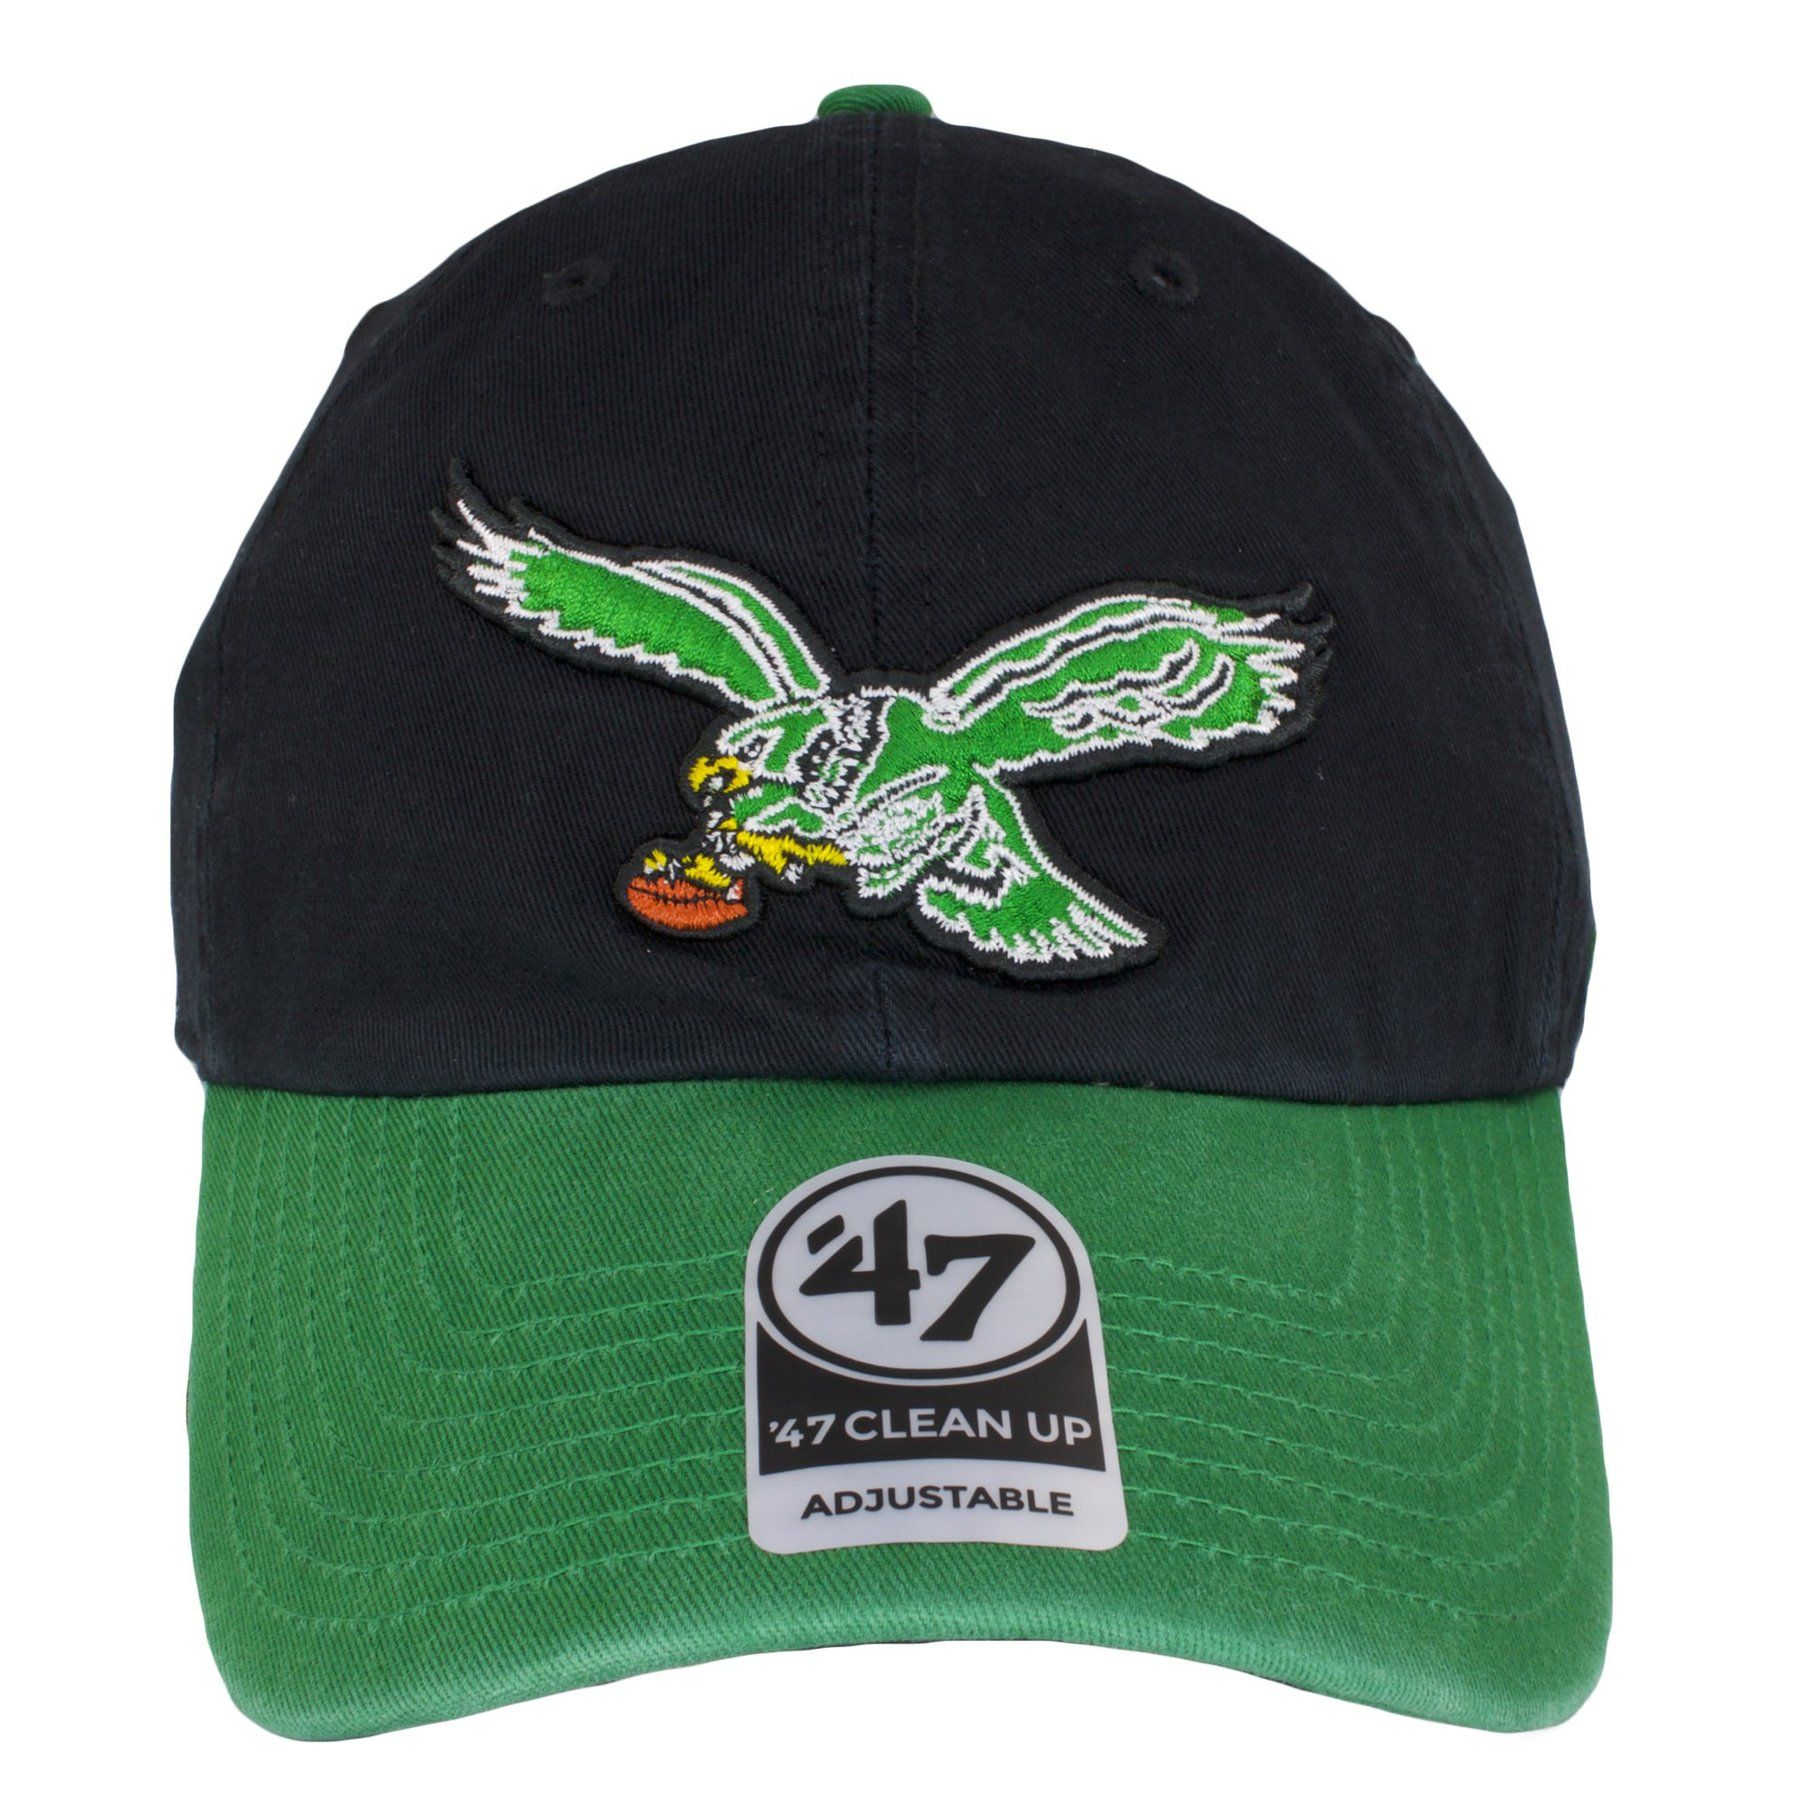 Shop throwback Eagles gear right now! Go birds! The new line-up of  throwback Philadelphia Eagles dad hats 6743b7a42